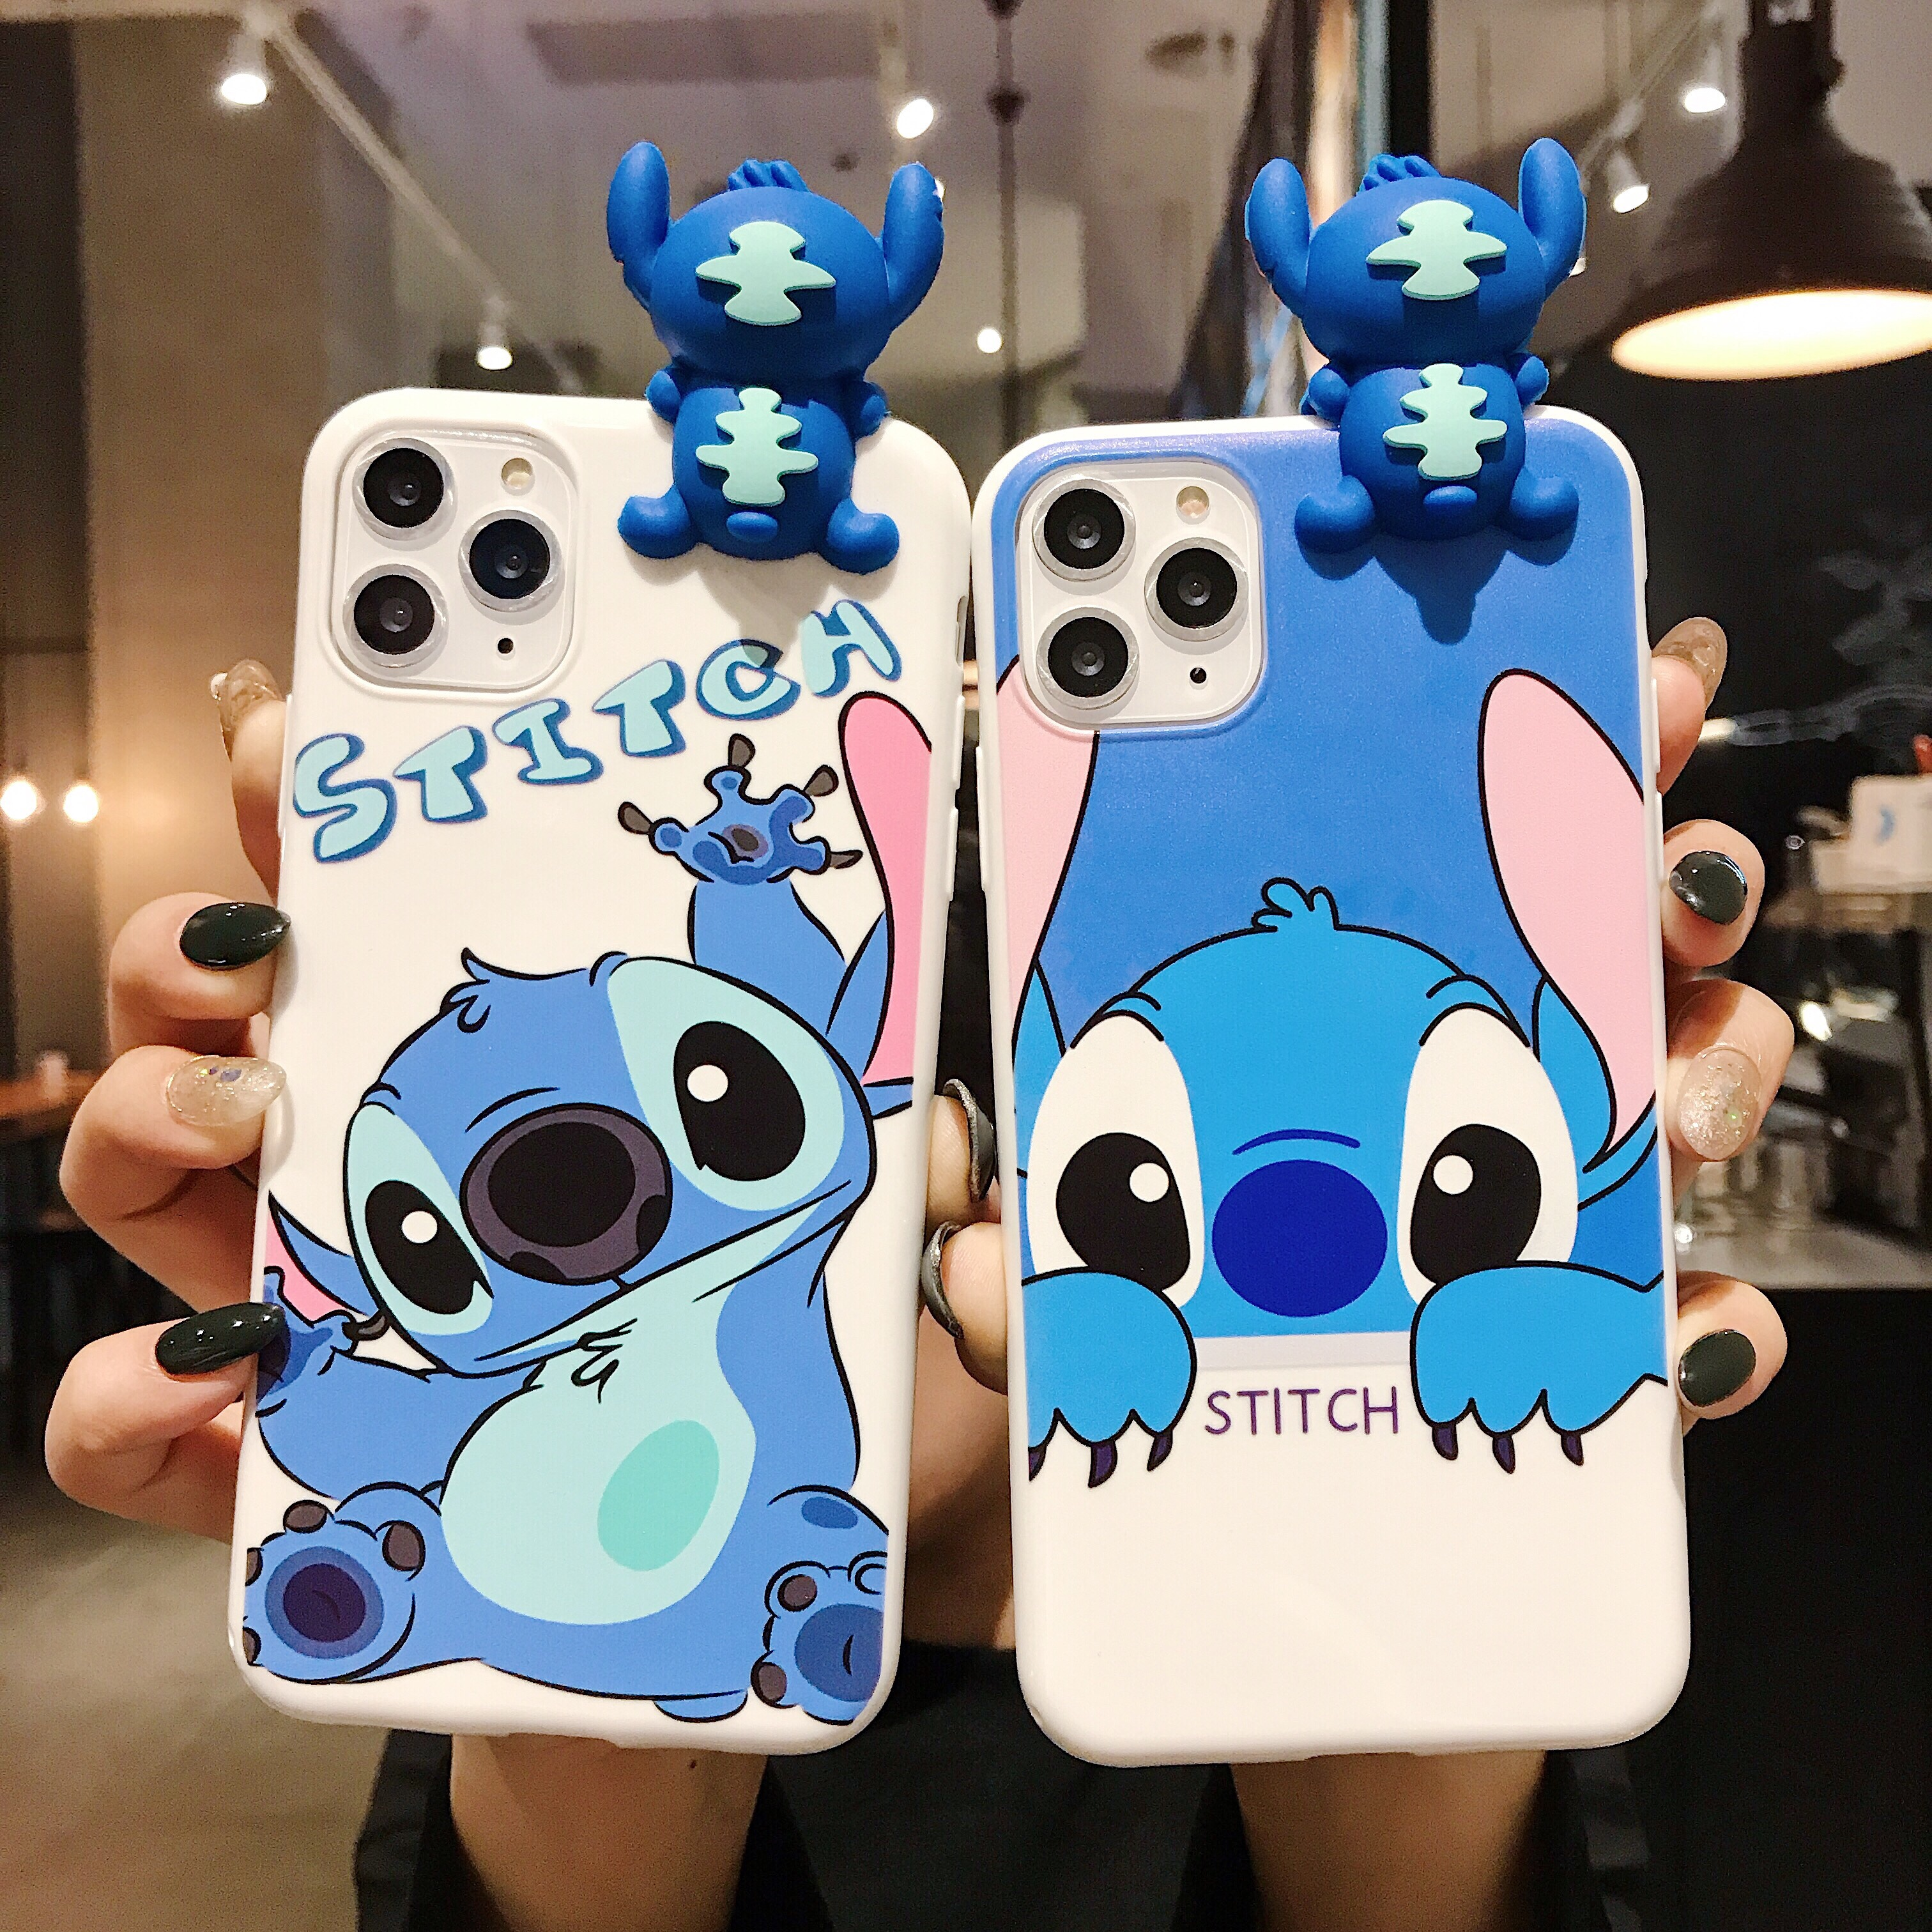 3D Doll Matte Stitch Robot Cat Cute Cartoon Silicone soft phone case for iphone X XR XS 11PRO MAX 6S 7 8 plus cover coque fundas|Wallet Cases|   - AliExpress